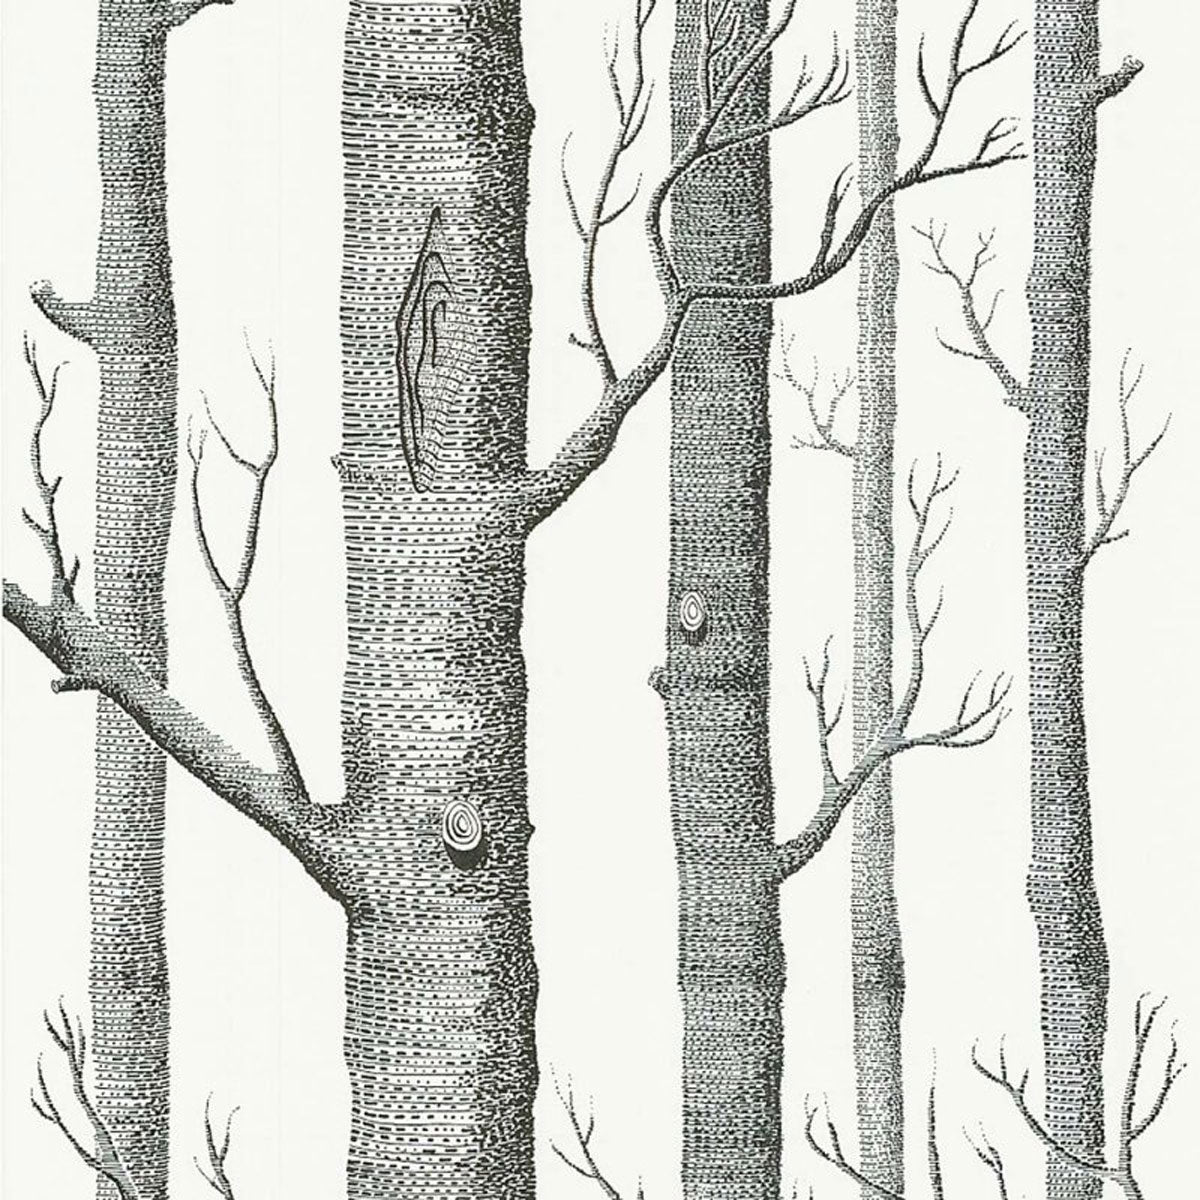 Cole & Son 'Woods Black on White' Wallpaper